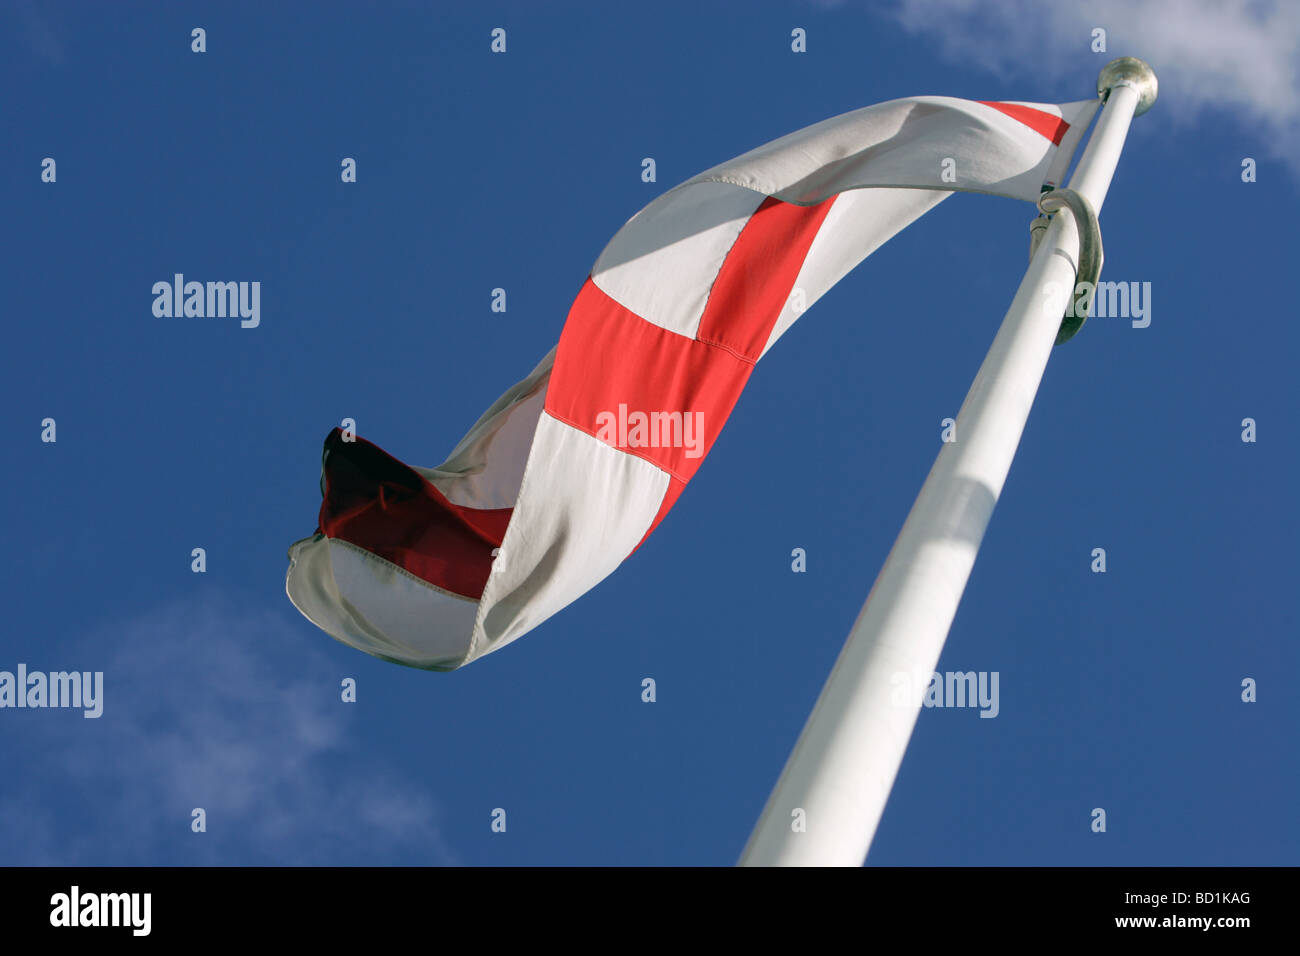 The flag of St George. Stock Photo